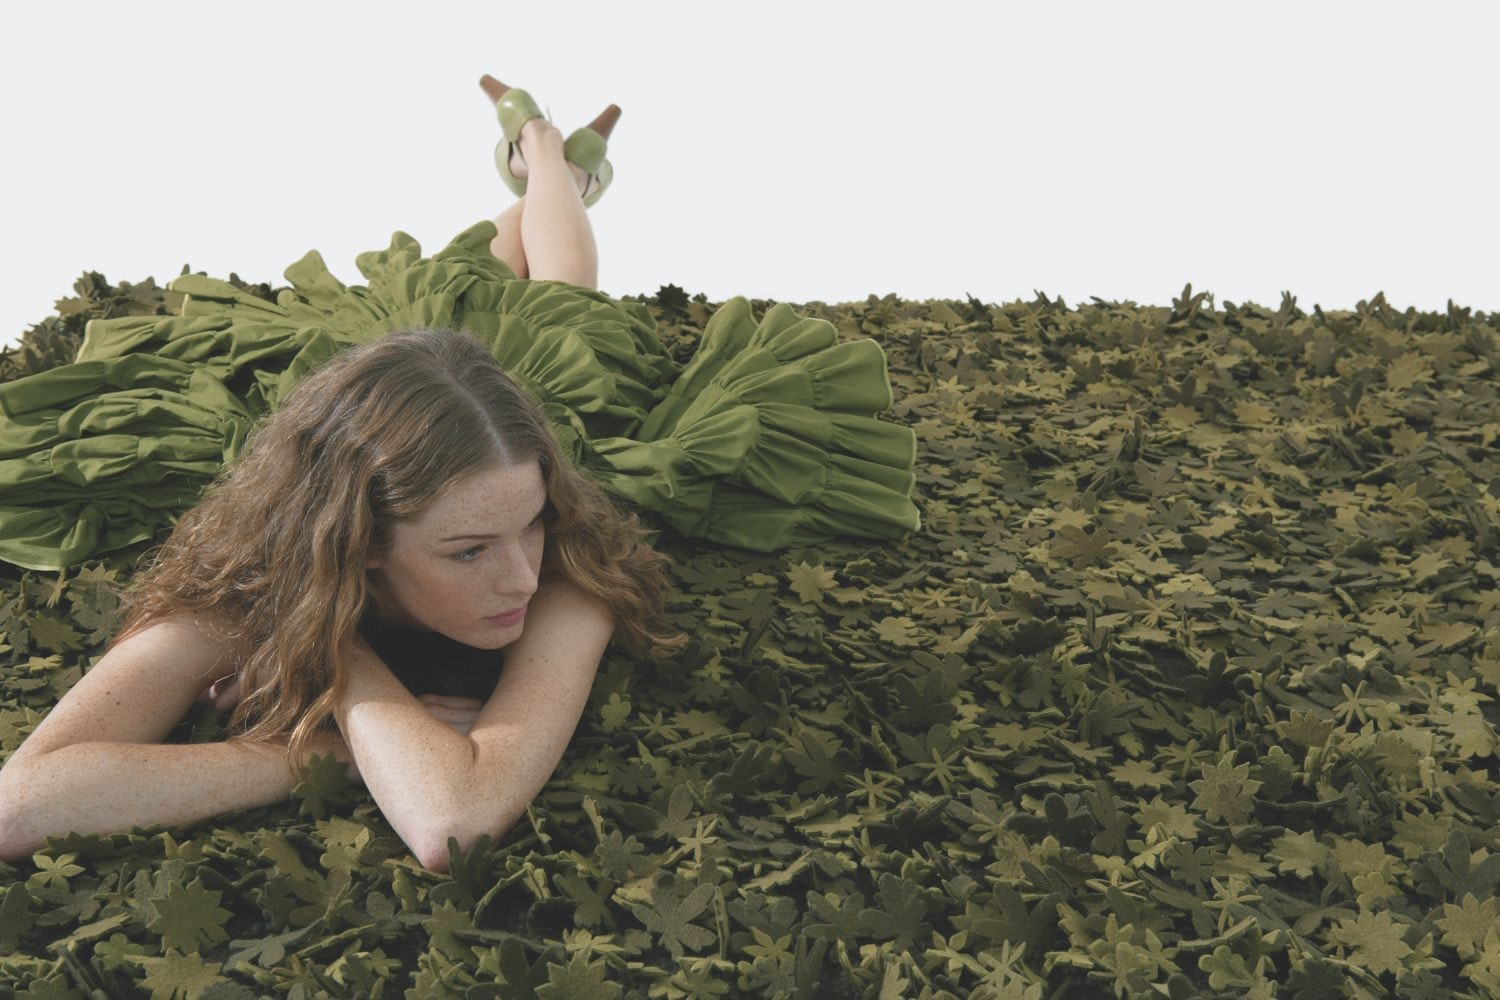 Little Field of Flowers by Studio Tord Boontje for Nanimarquina